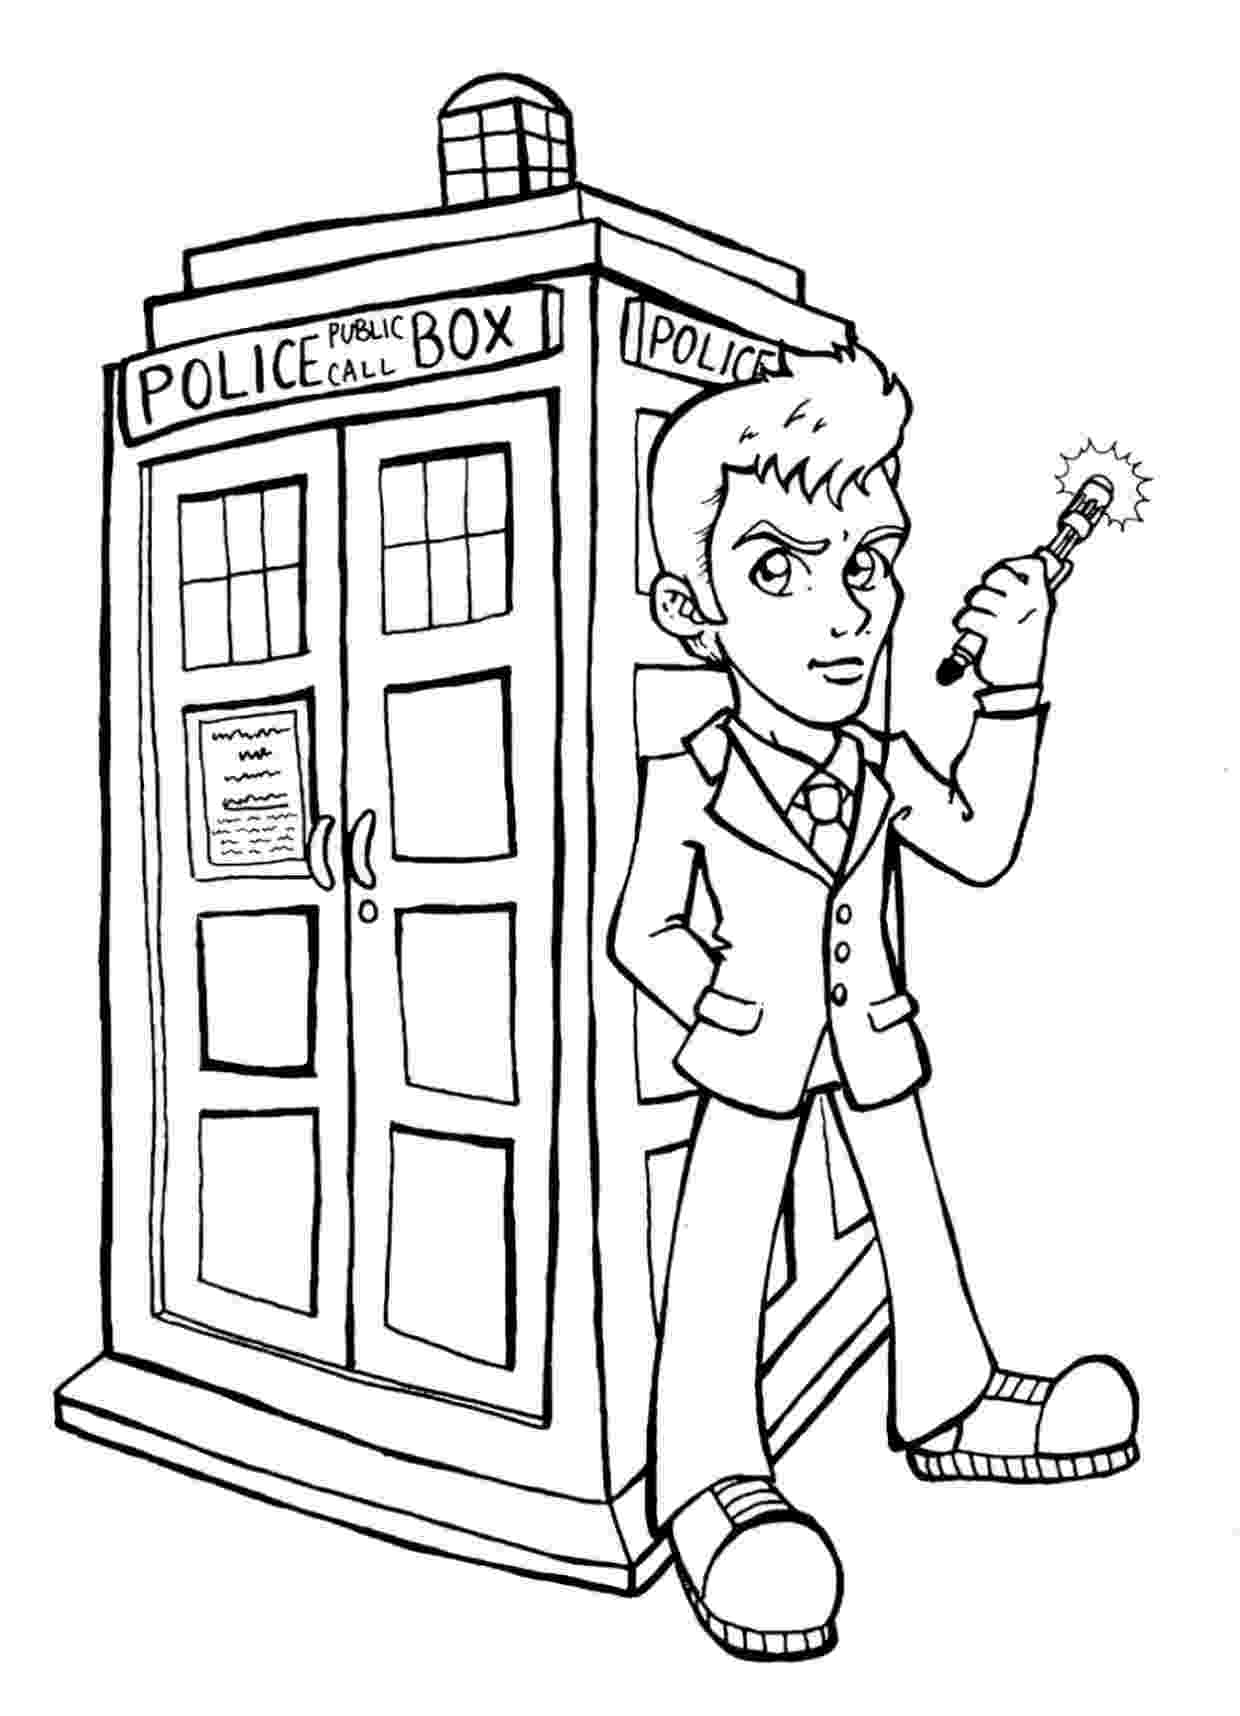 tardis colouring pages google image result for httpwwwdeviantartcomdownload pages colouring tardis